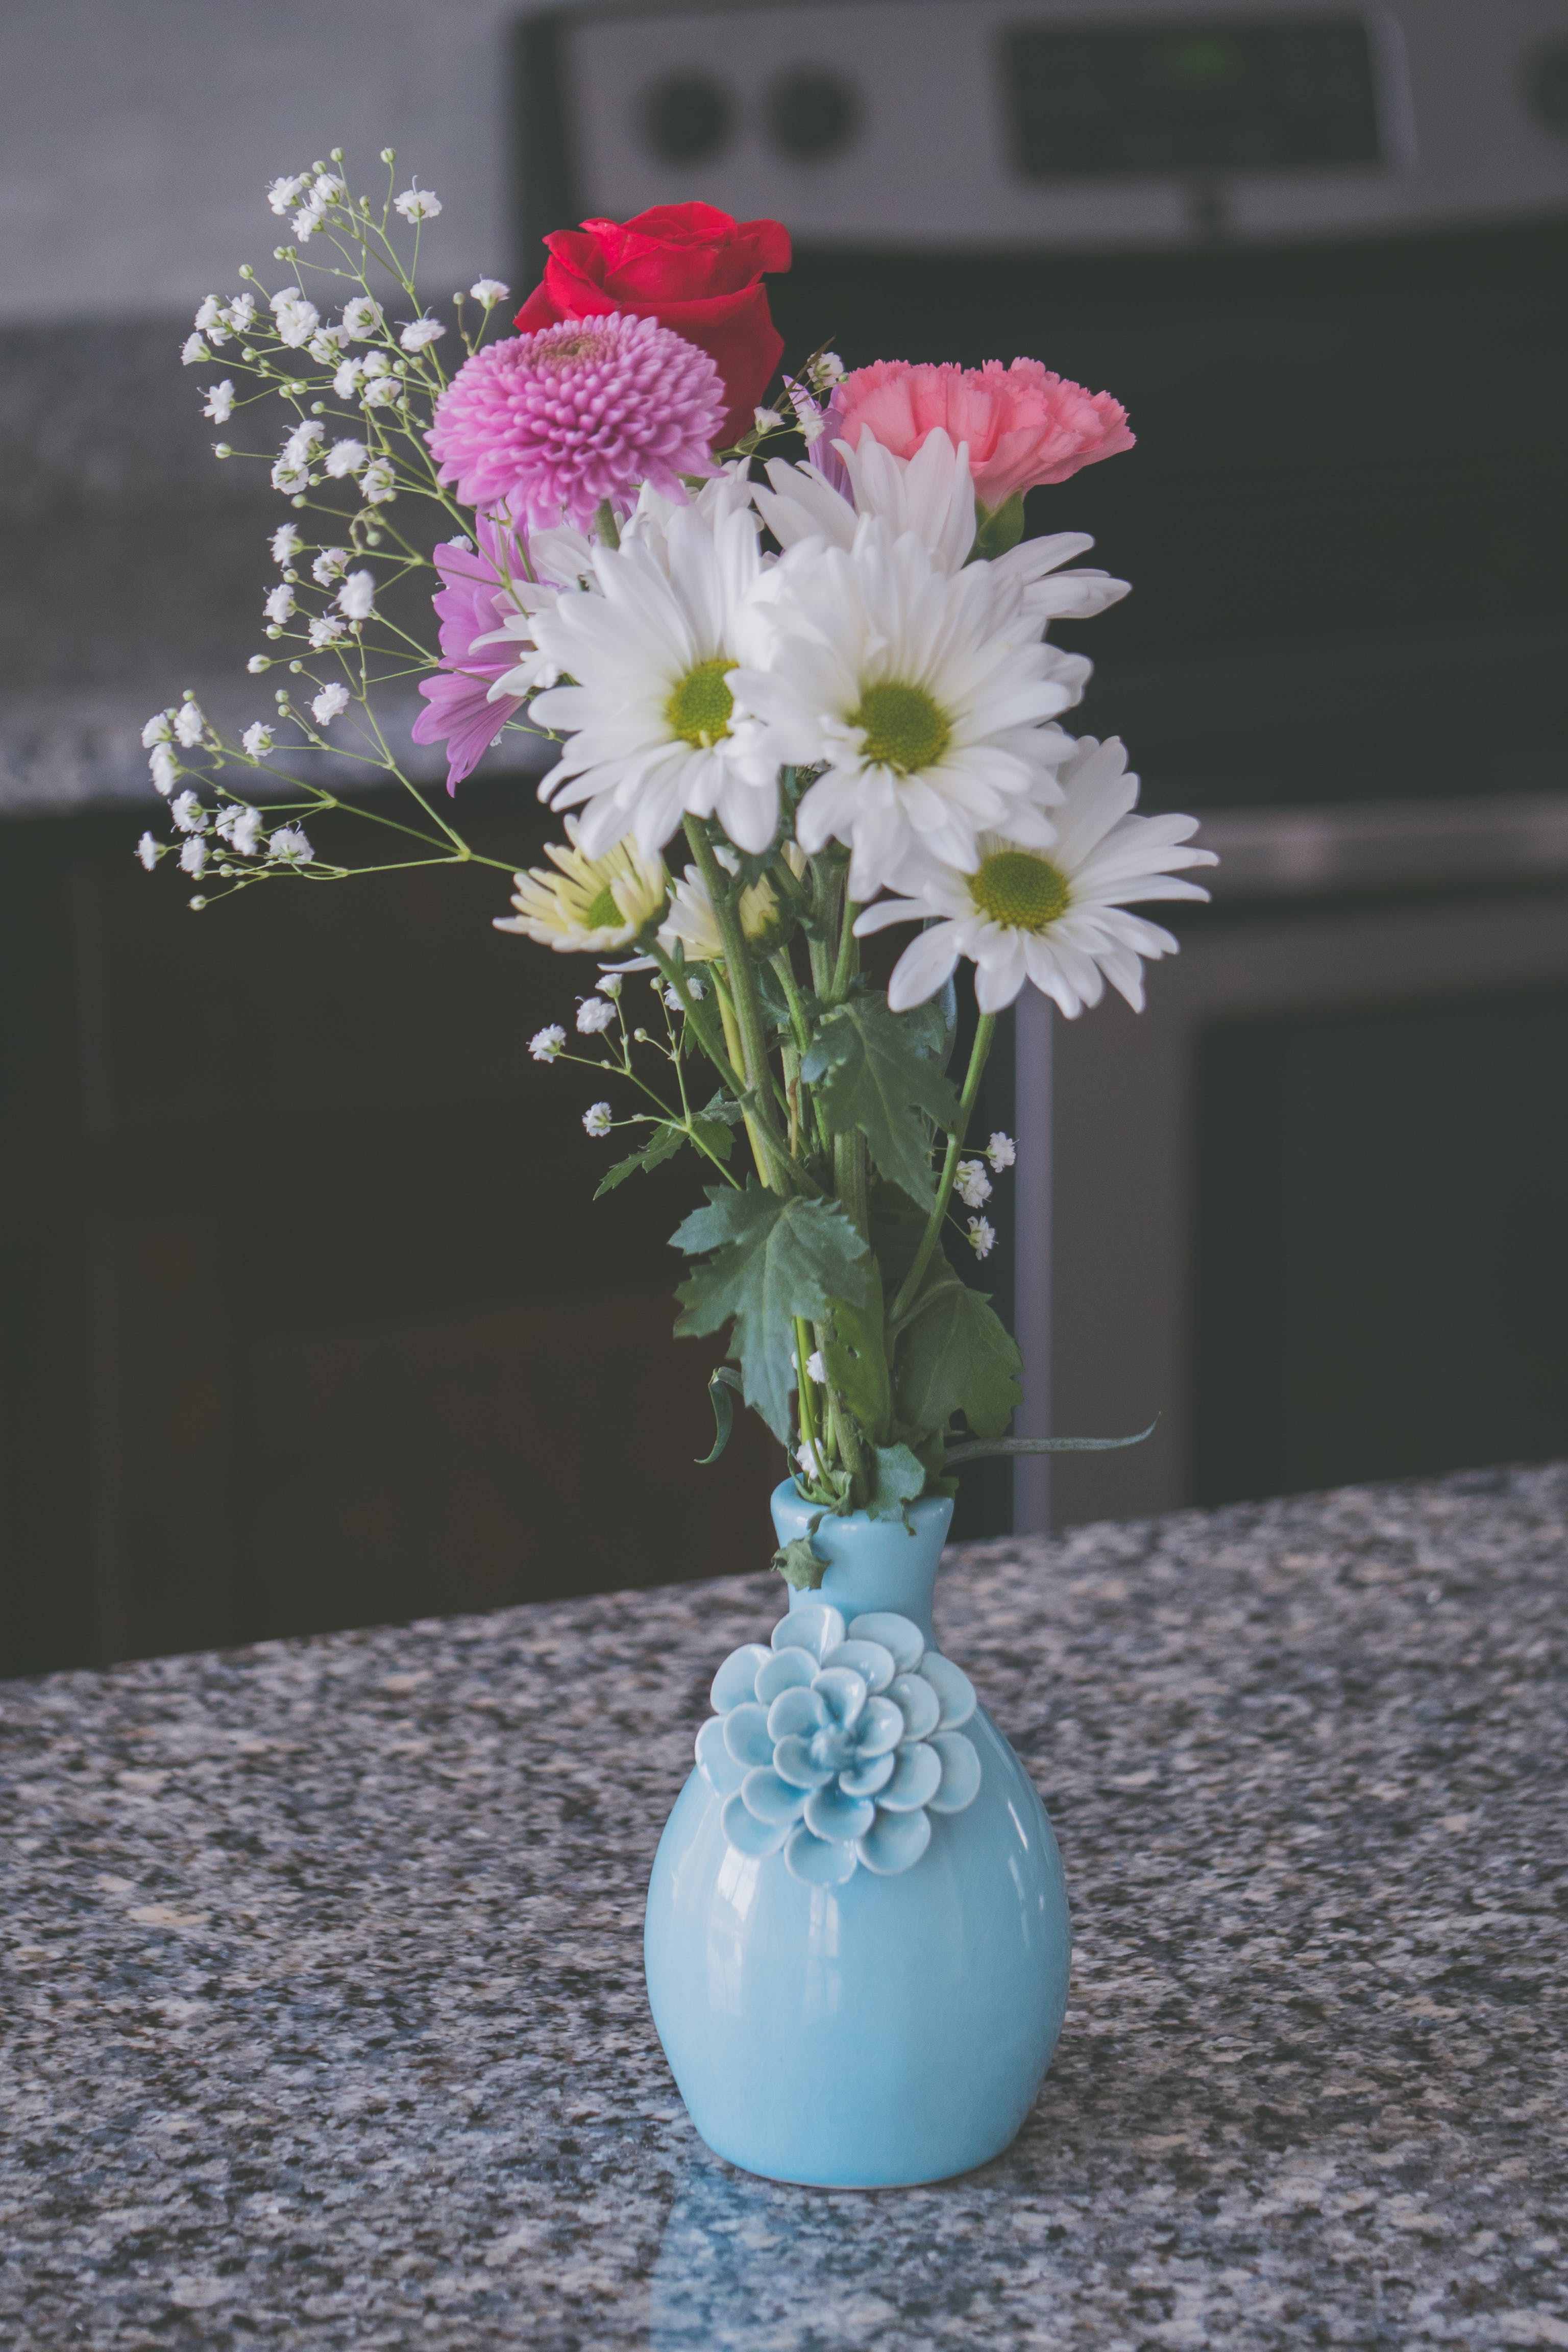 Assorted Flowers in Blue Vase